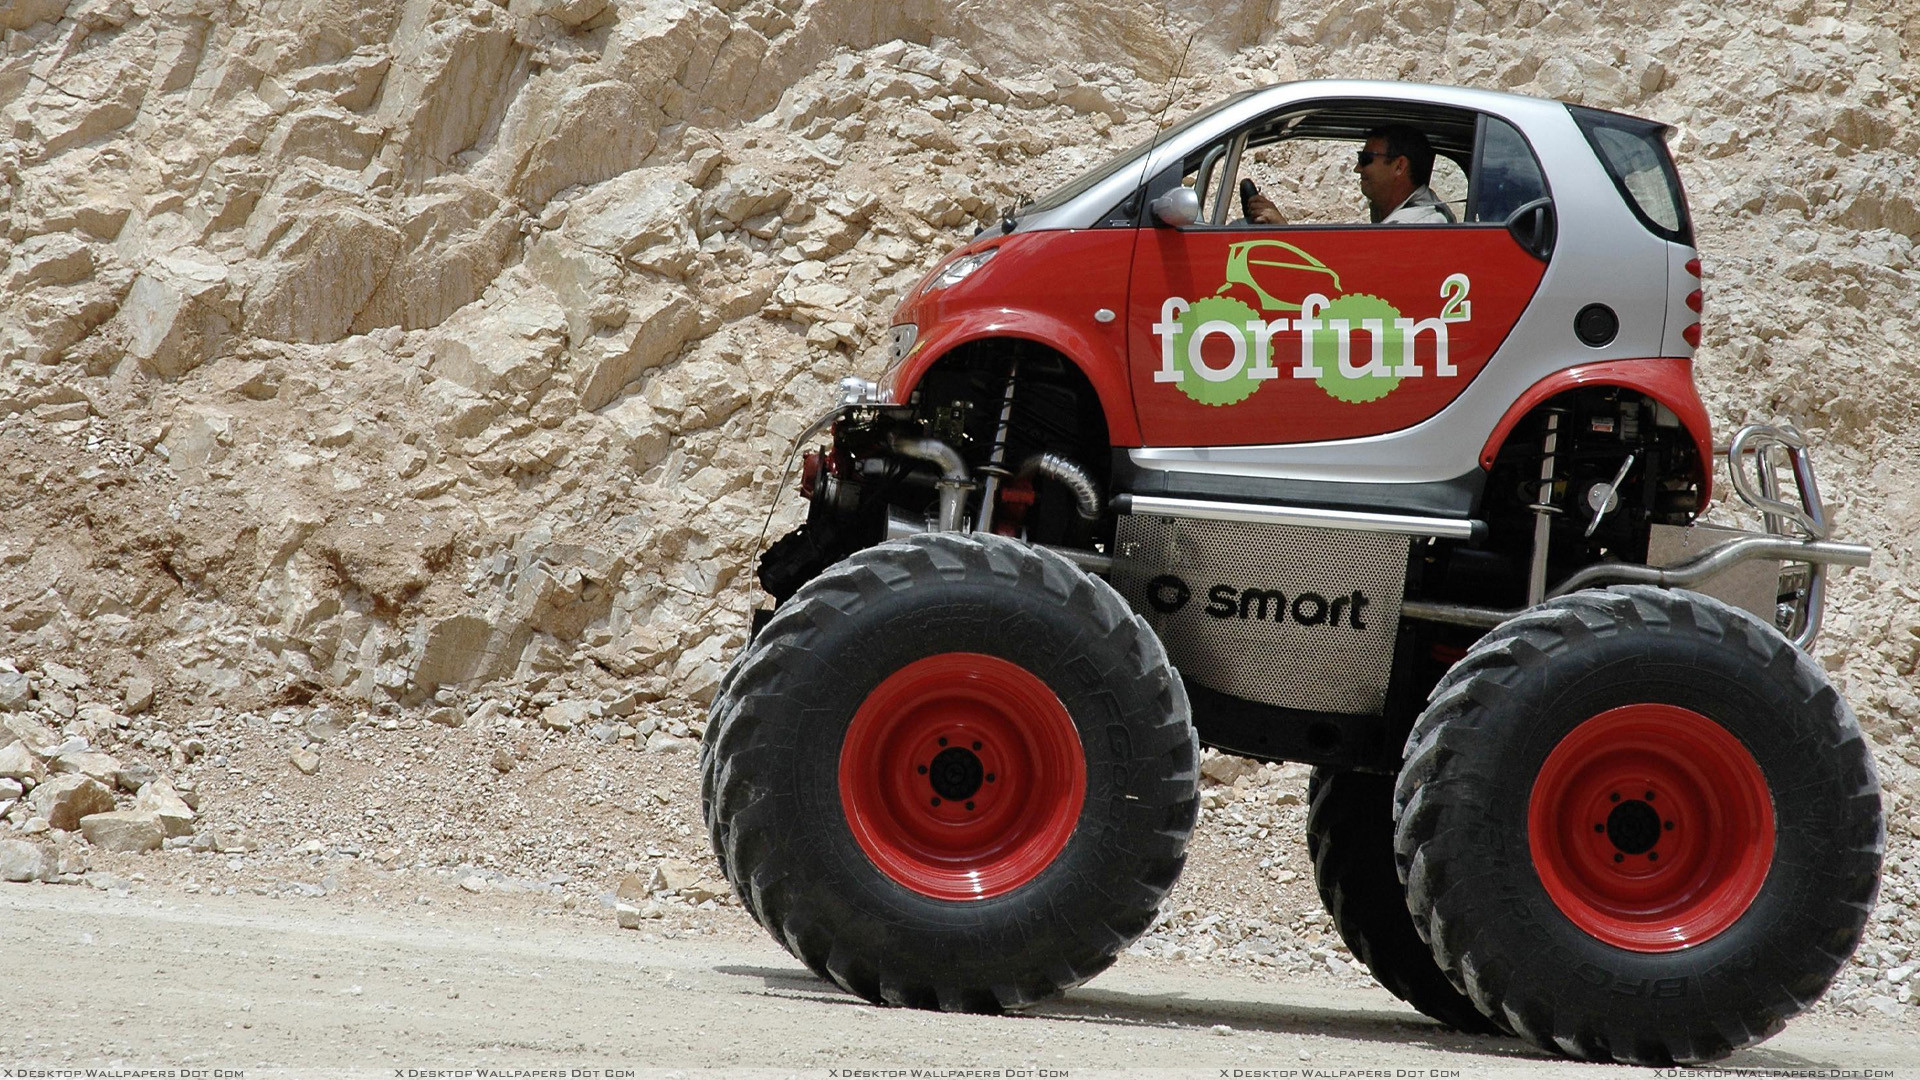 """Res: 1920x1080, You are viewing wallpaper titled """"Smart Forfun Monster Truck ..."""